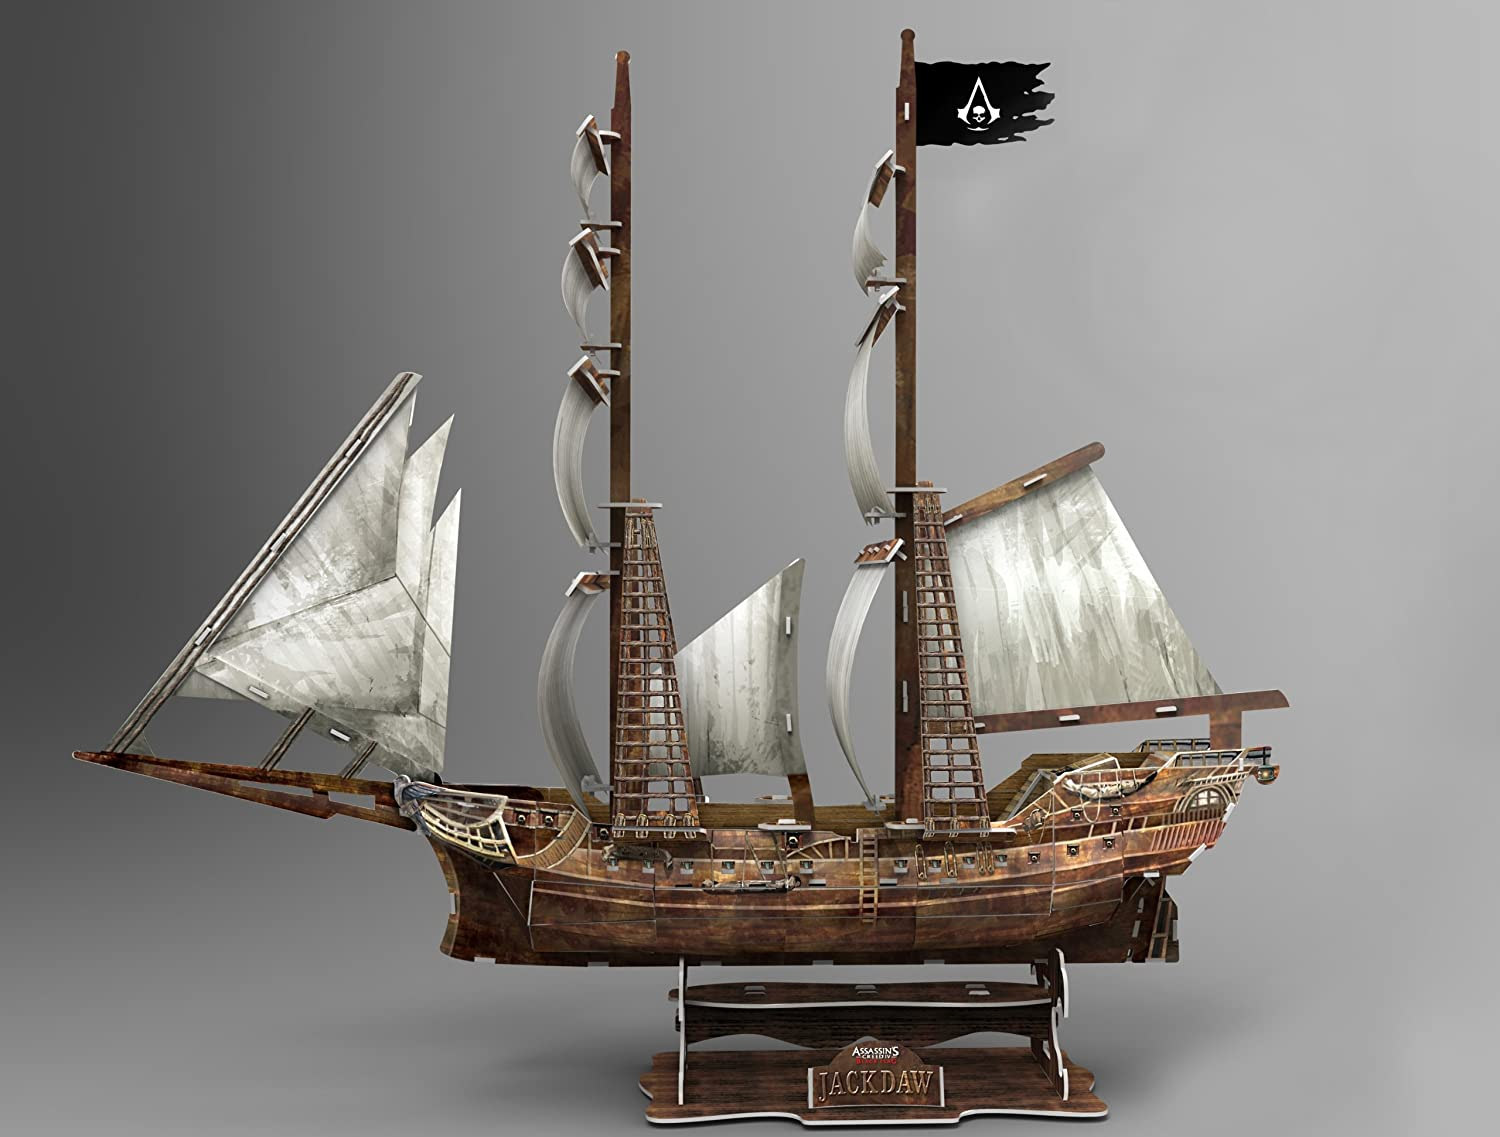 Barco Assassin's Creed Iv: Black Flag' - Jackdaw [Importación Francesa]